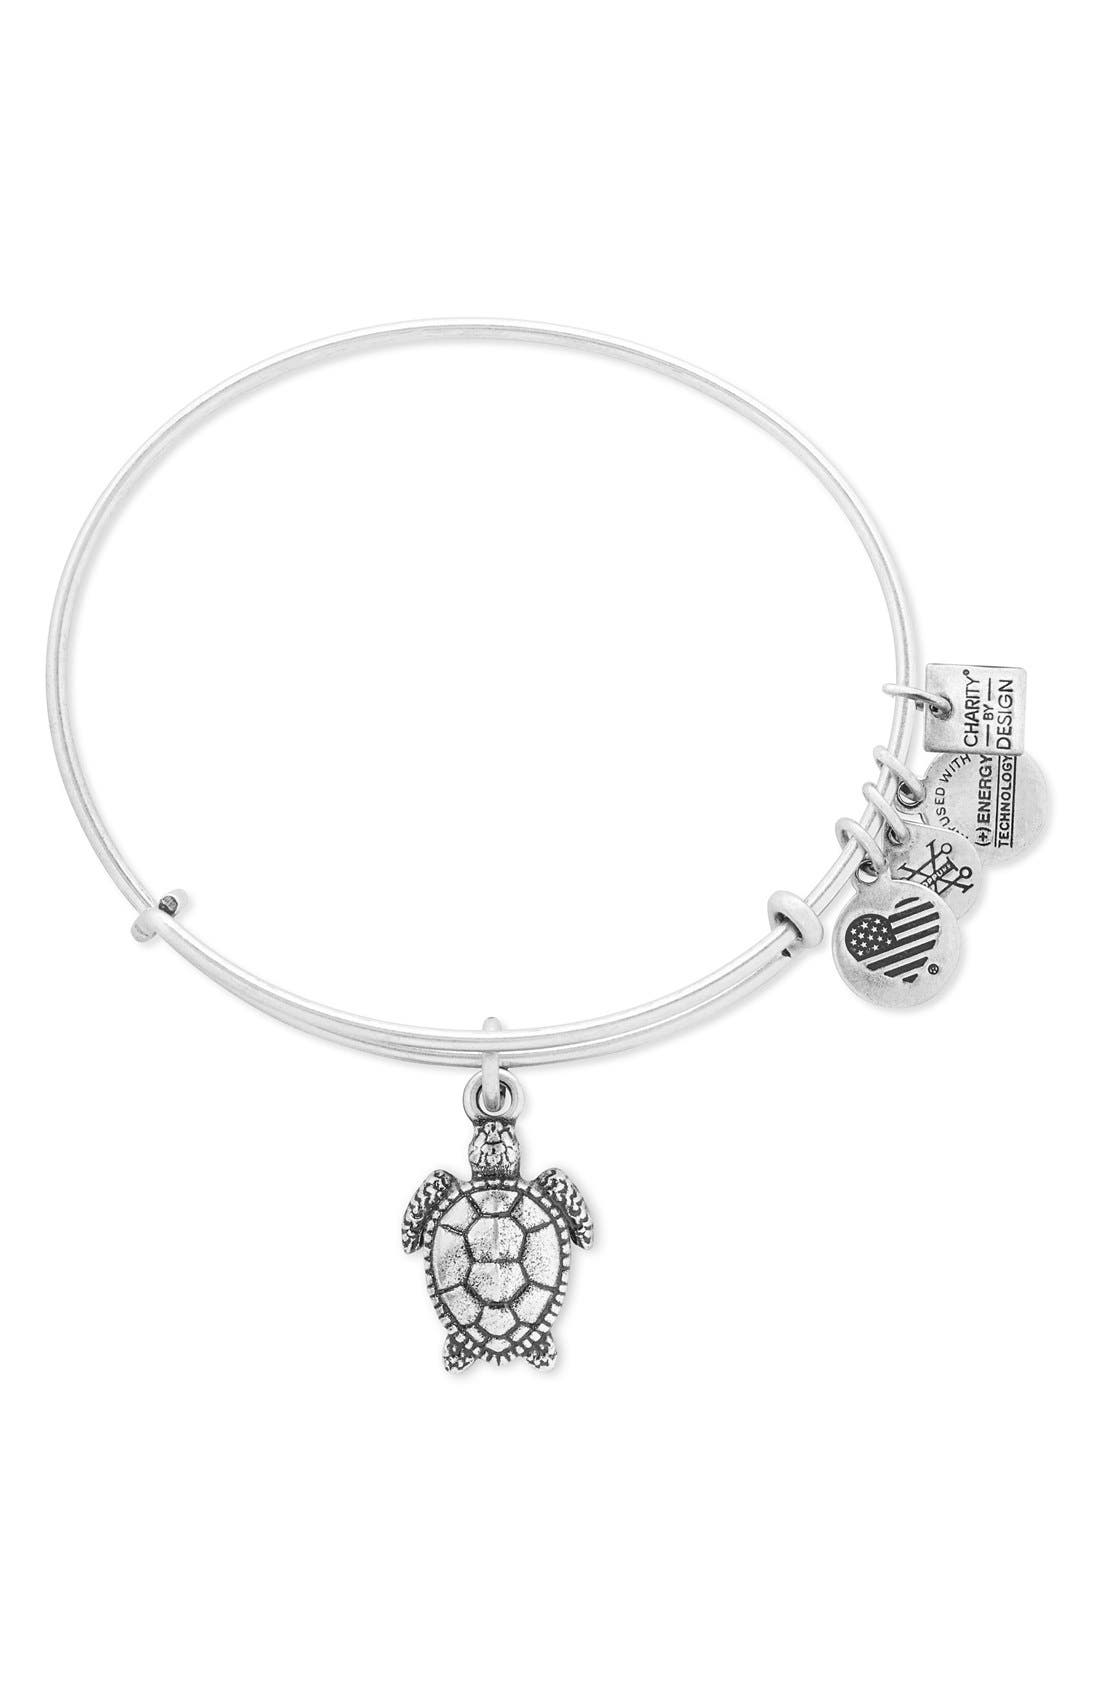 Sea Turtle Adjustable Wire Bangle,                             Main thumbnail 1, color,                             040